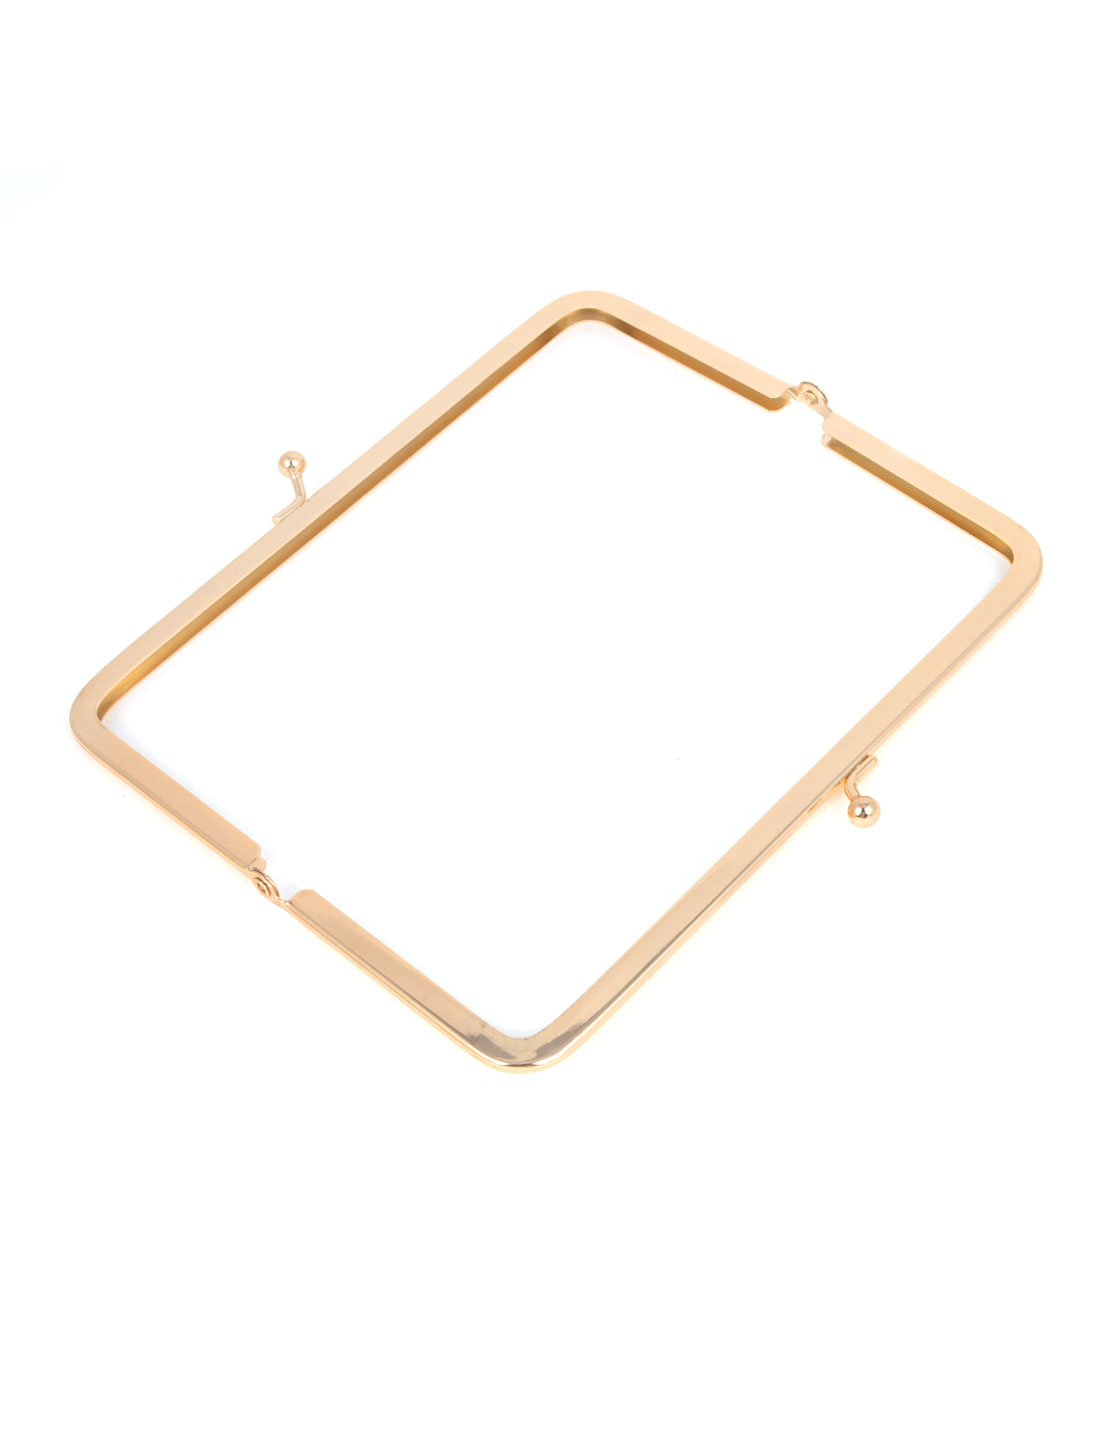 Gold Tone Metal Rectangle Kiss Lock Frame 16cm for Handbag Purse